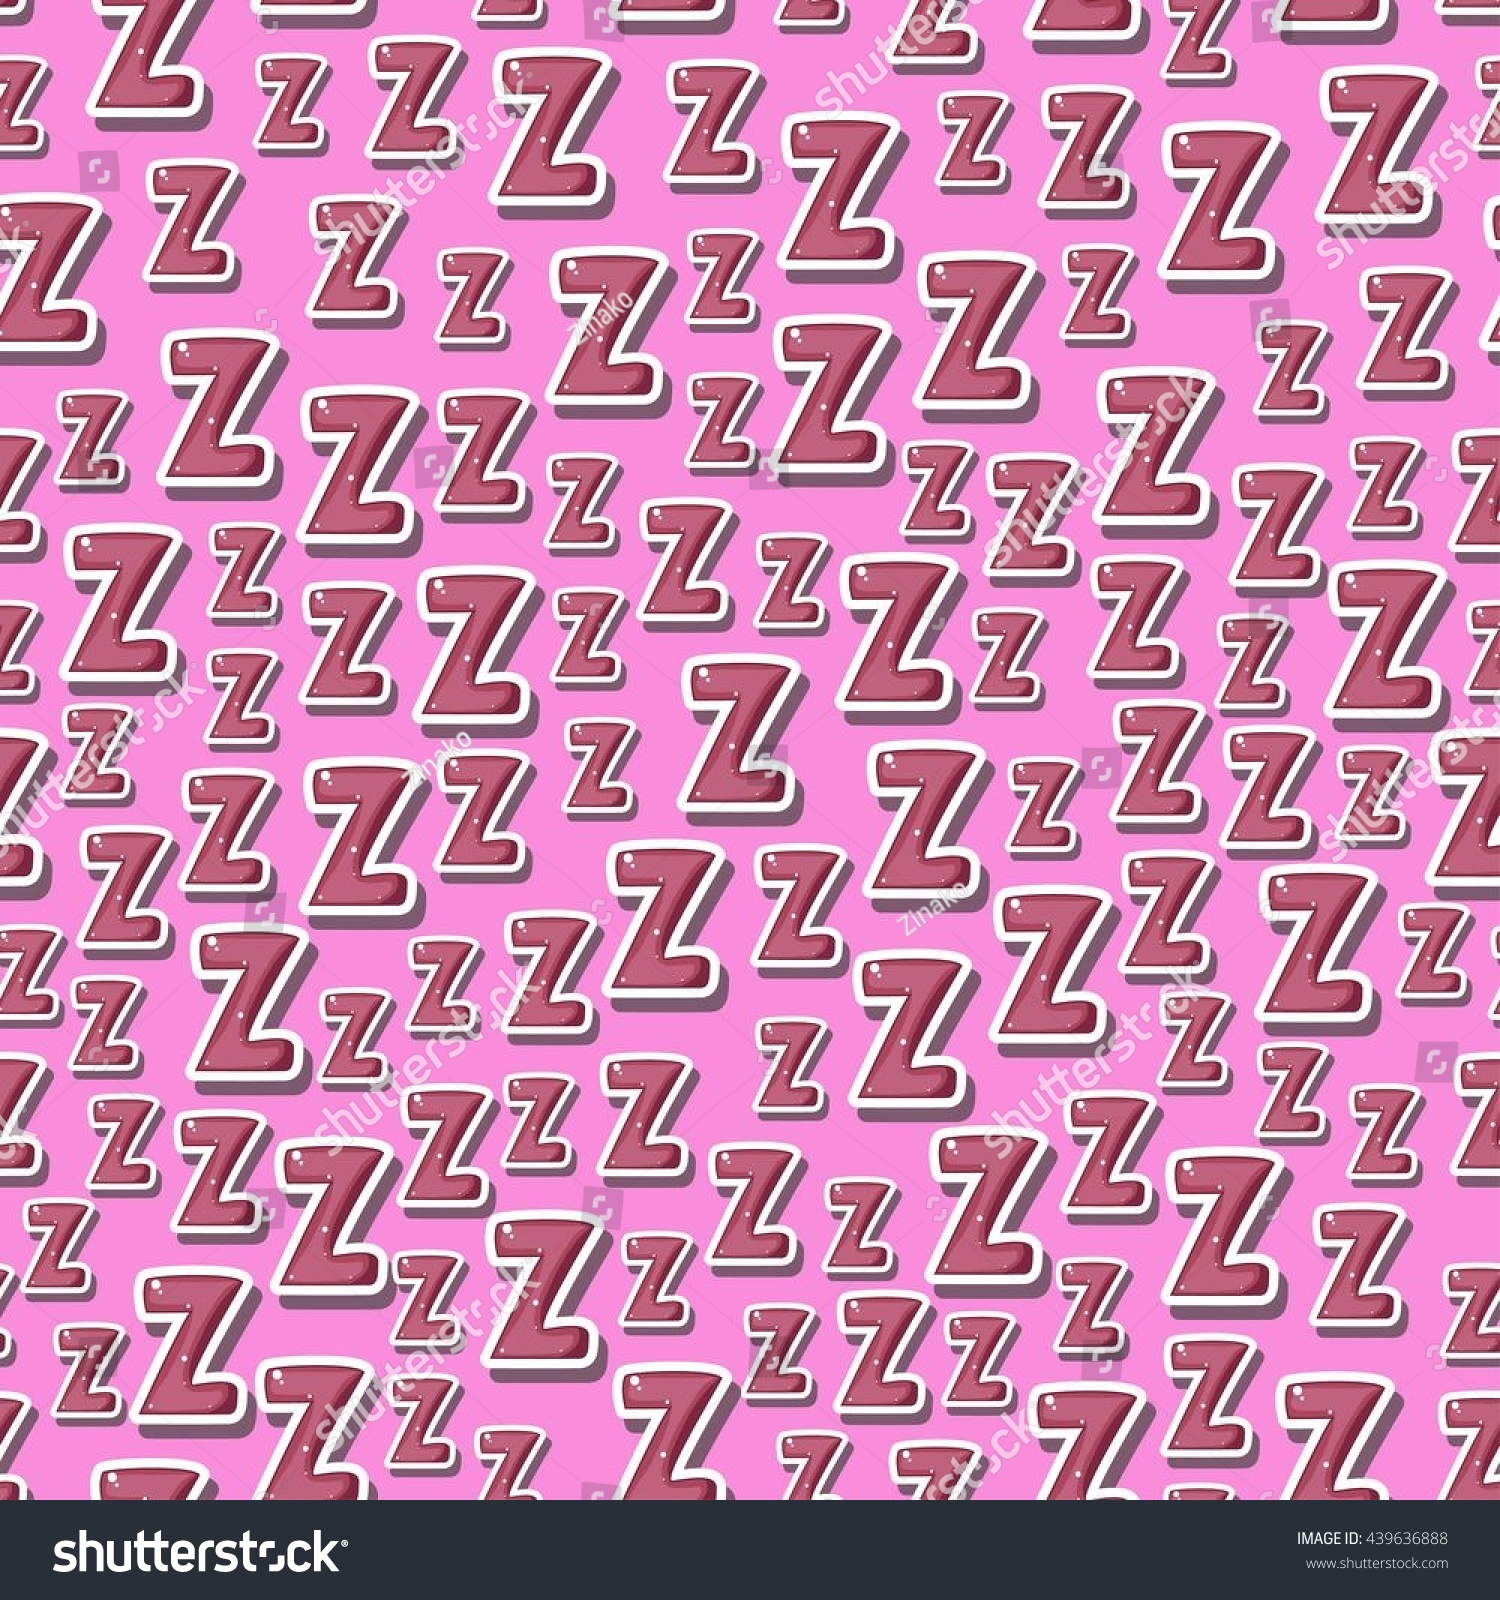 Seamless Childish Pattern Letters Z Zzz Stock Vector (Royalty Free ...